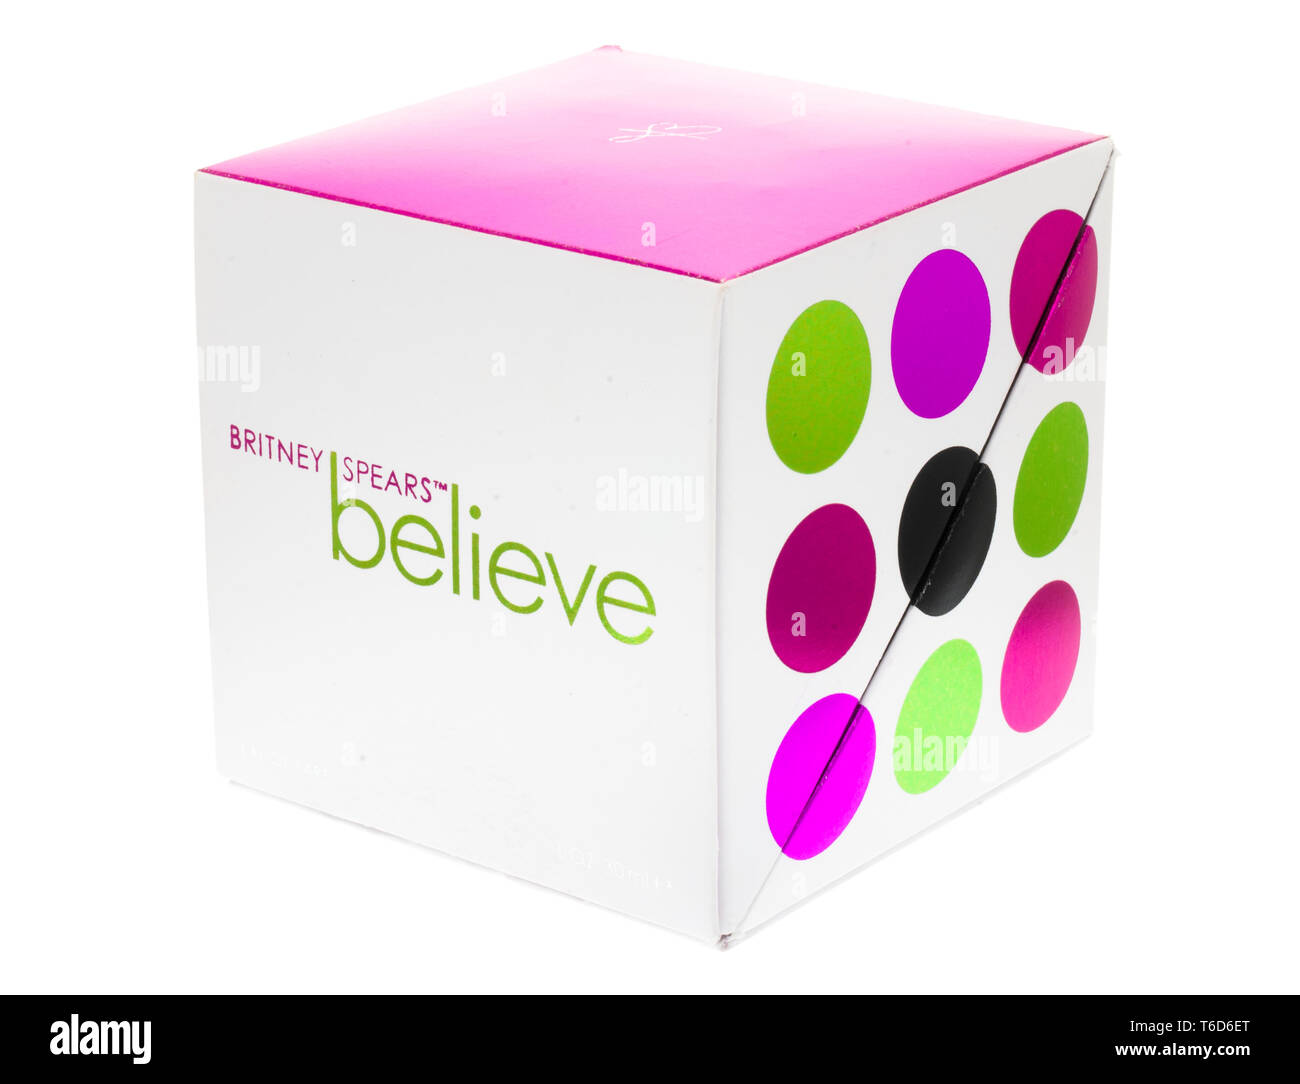 Britney Spears unisex Believe fragrance first launched in 2007 also the name of her album. - Stock Image